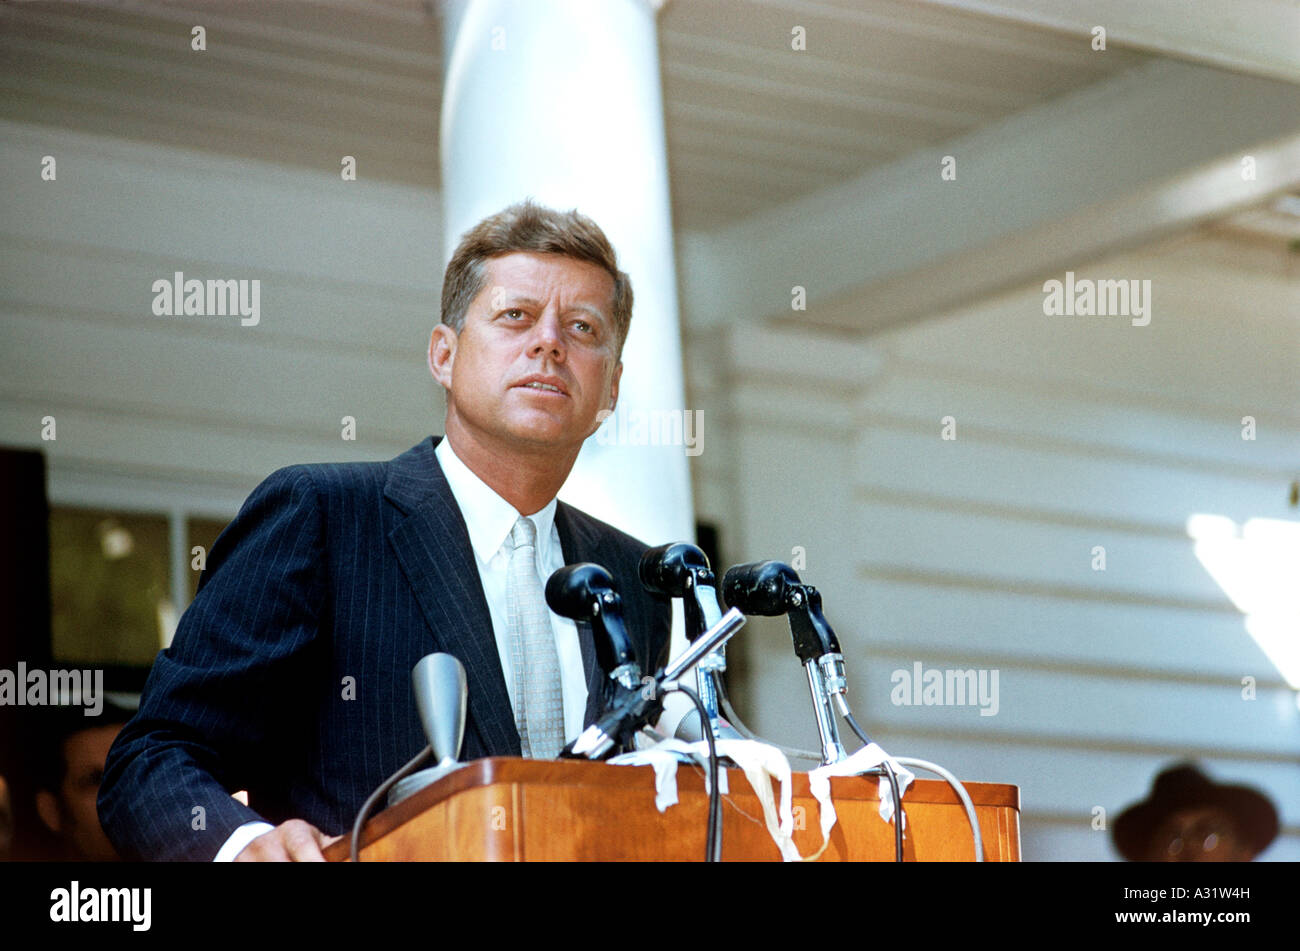 JOHN F KENNEDY US President 1917 to 1963 - Stock Image